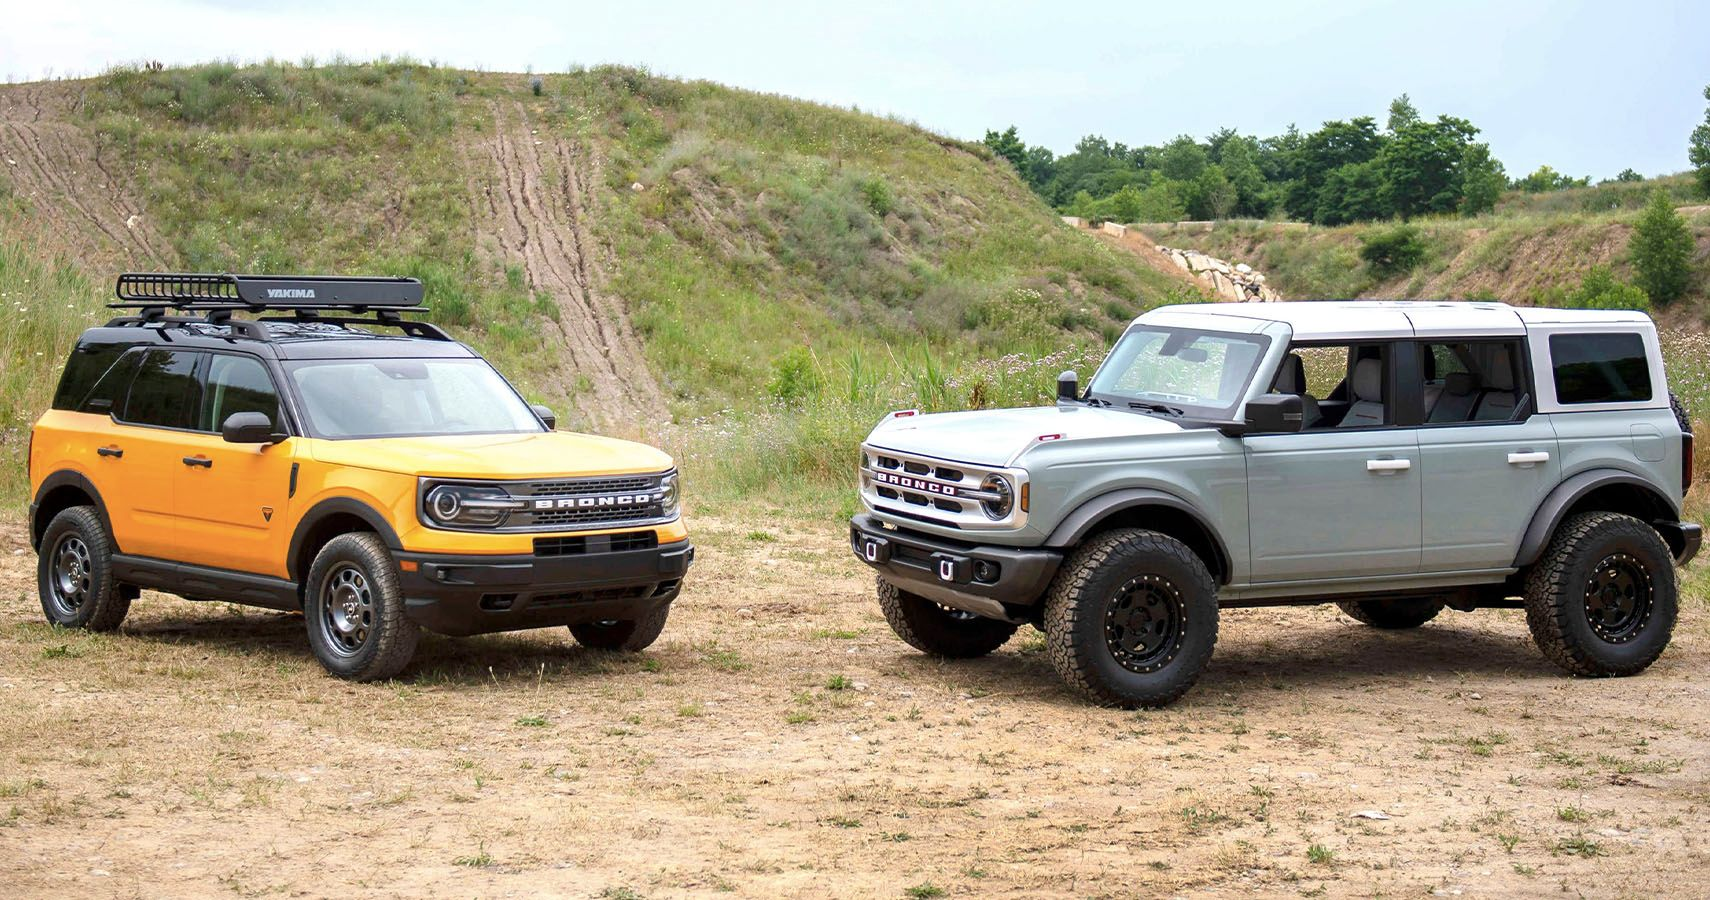 Ford Bronco Orders Could Face 18-Month Delay, Mach-E On ...